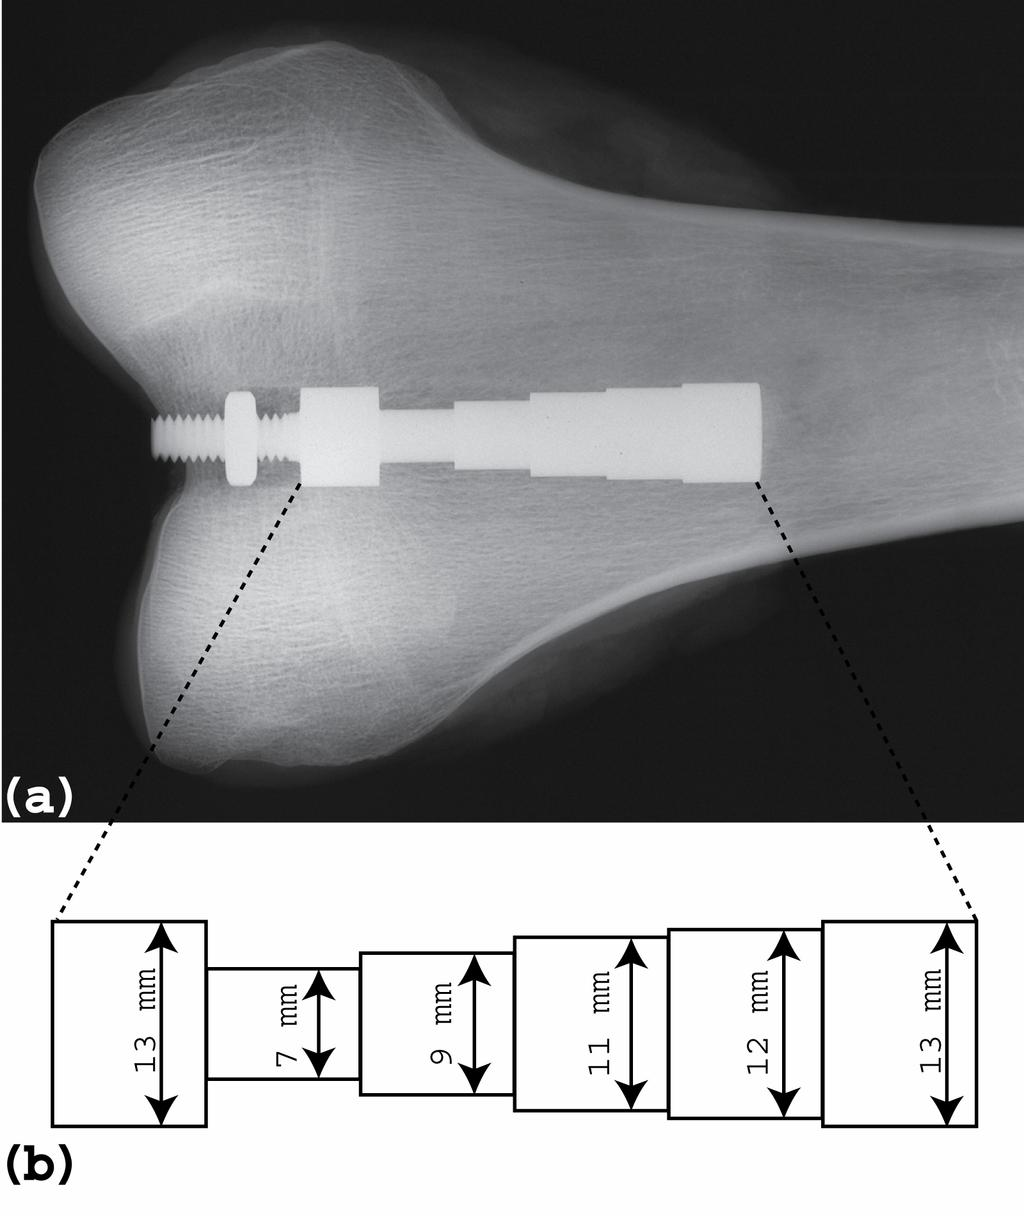 Figure 4.2 (a) A contact x-ray (Faxitron) of the distal femur with the stepped titanium implant inserted.